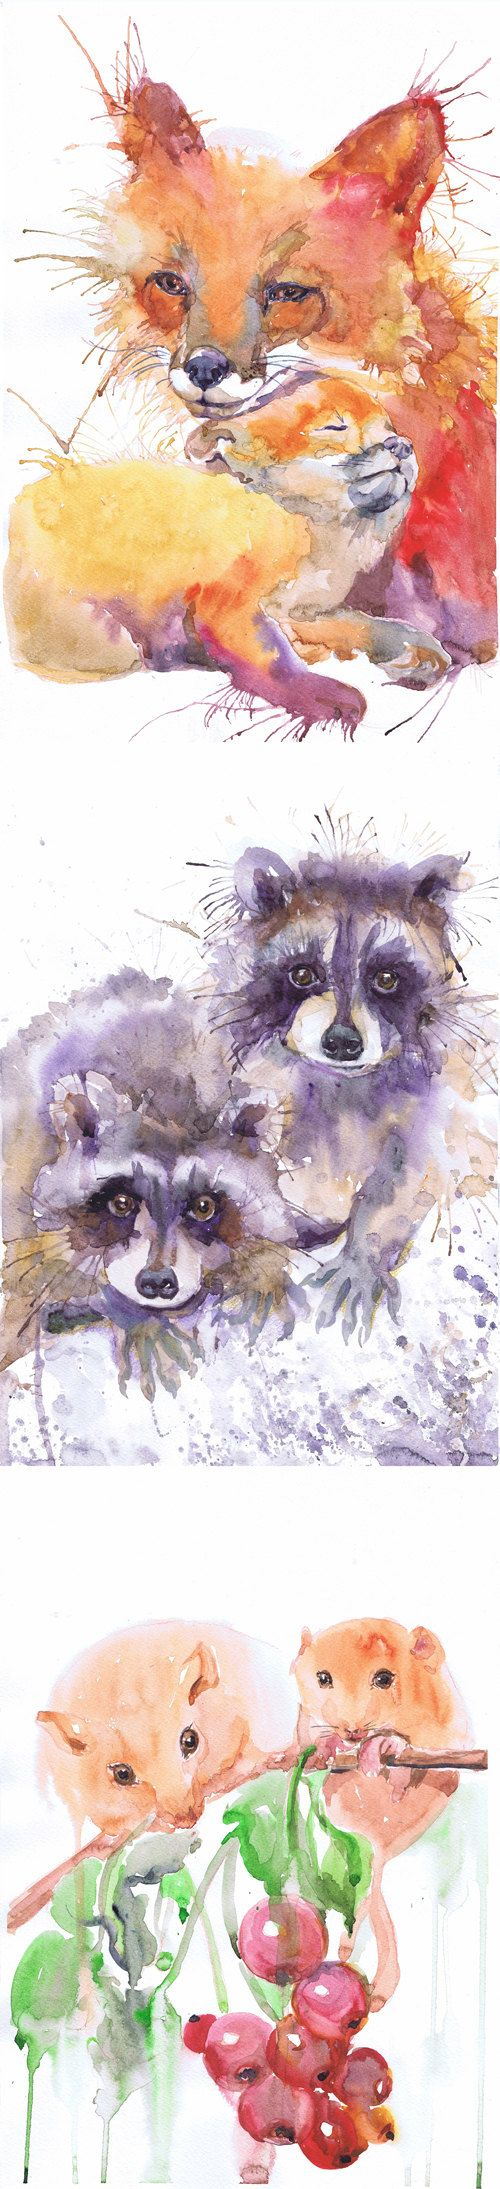 Watercolor artist magazine review - Atc Set Of 9 Signed Art Watercolor Artist Trading Cards Prints Painting Aceo Woodland Animals Baby Giclee Collectible Card Watercolour Set Of 9 Signed